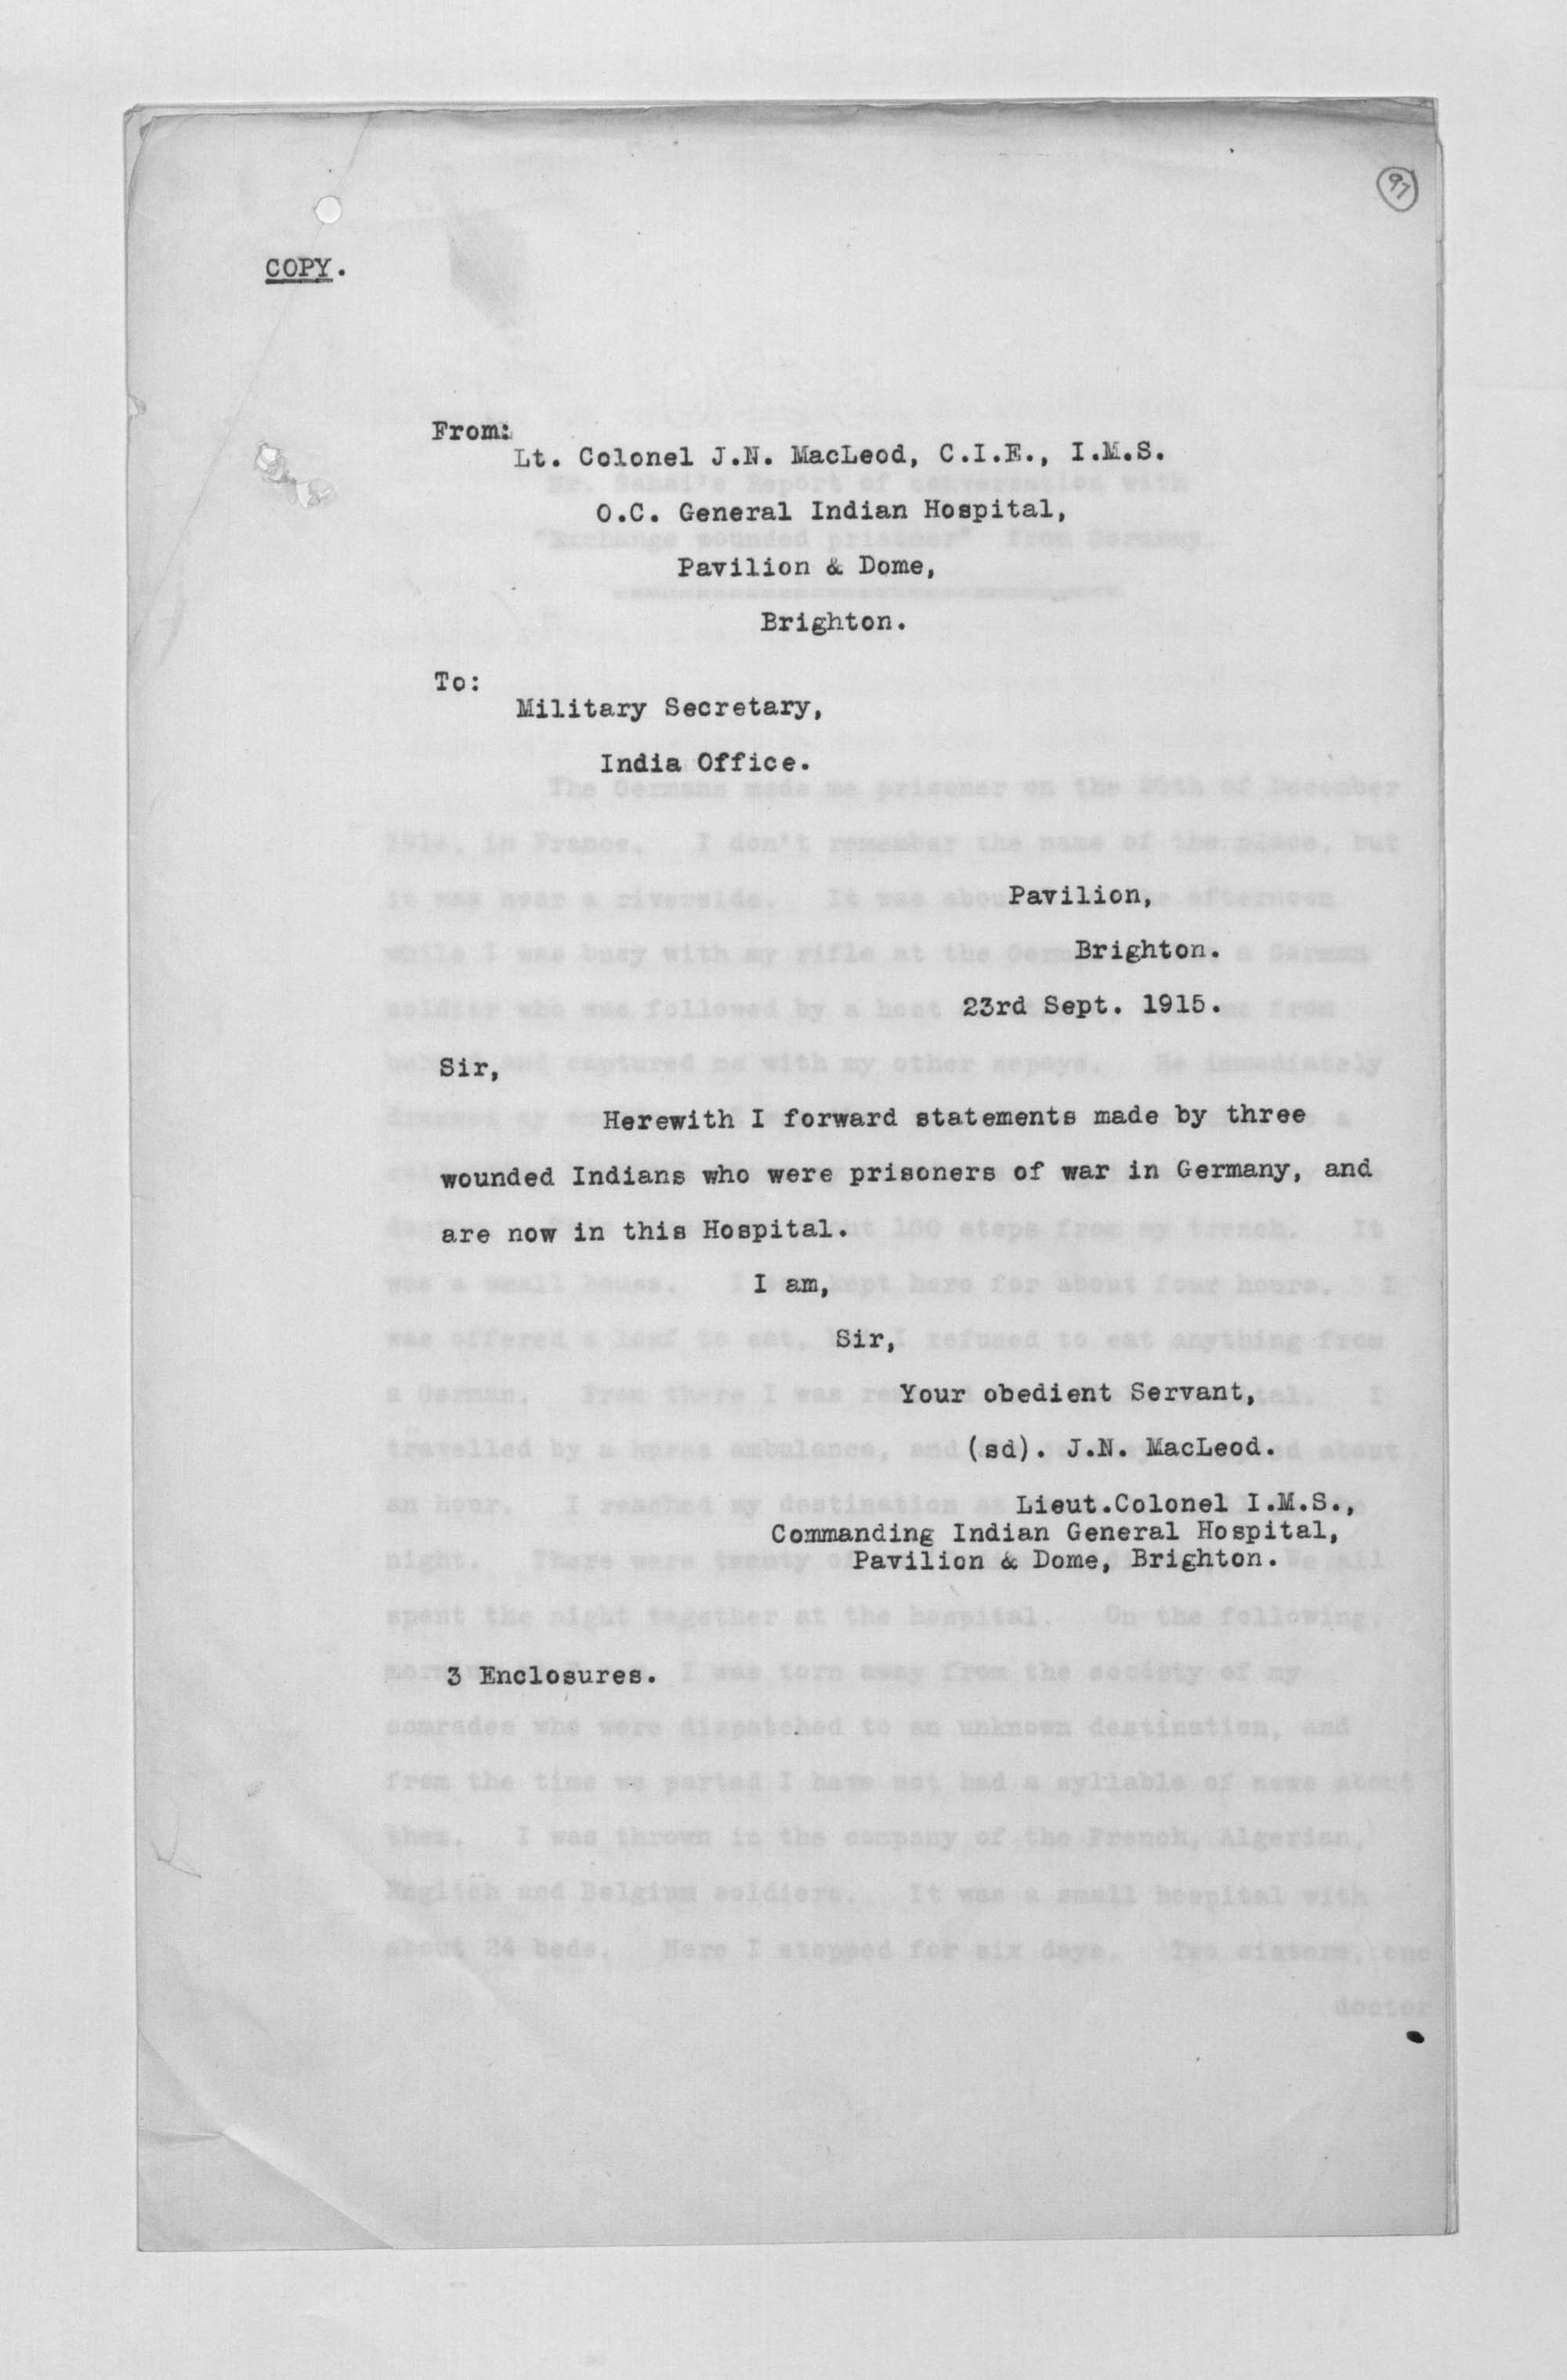 Statements by three wounded Indians who were prisoners of war in Germany 1914-1915 IOR/L/MIL/7/17276 ff.97-108